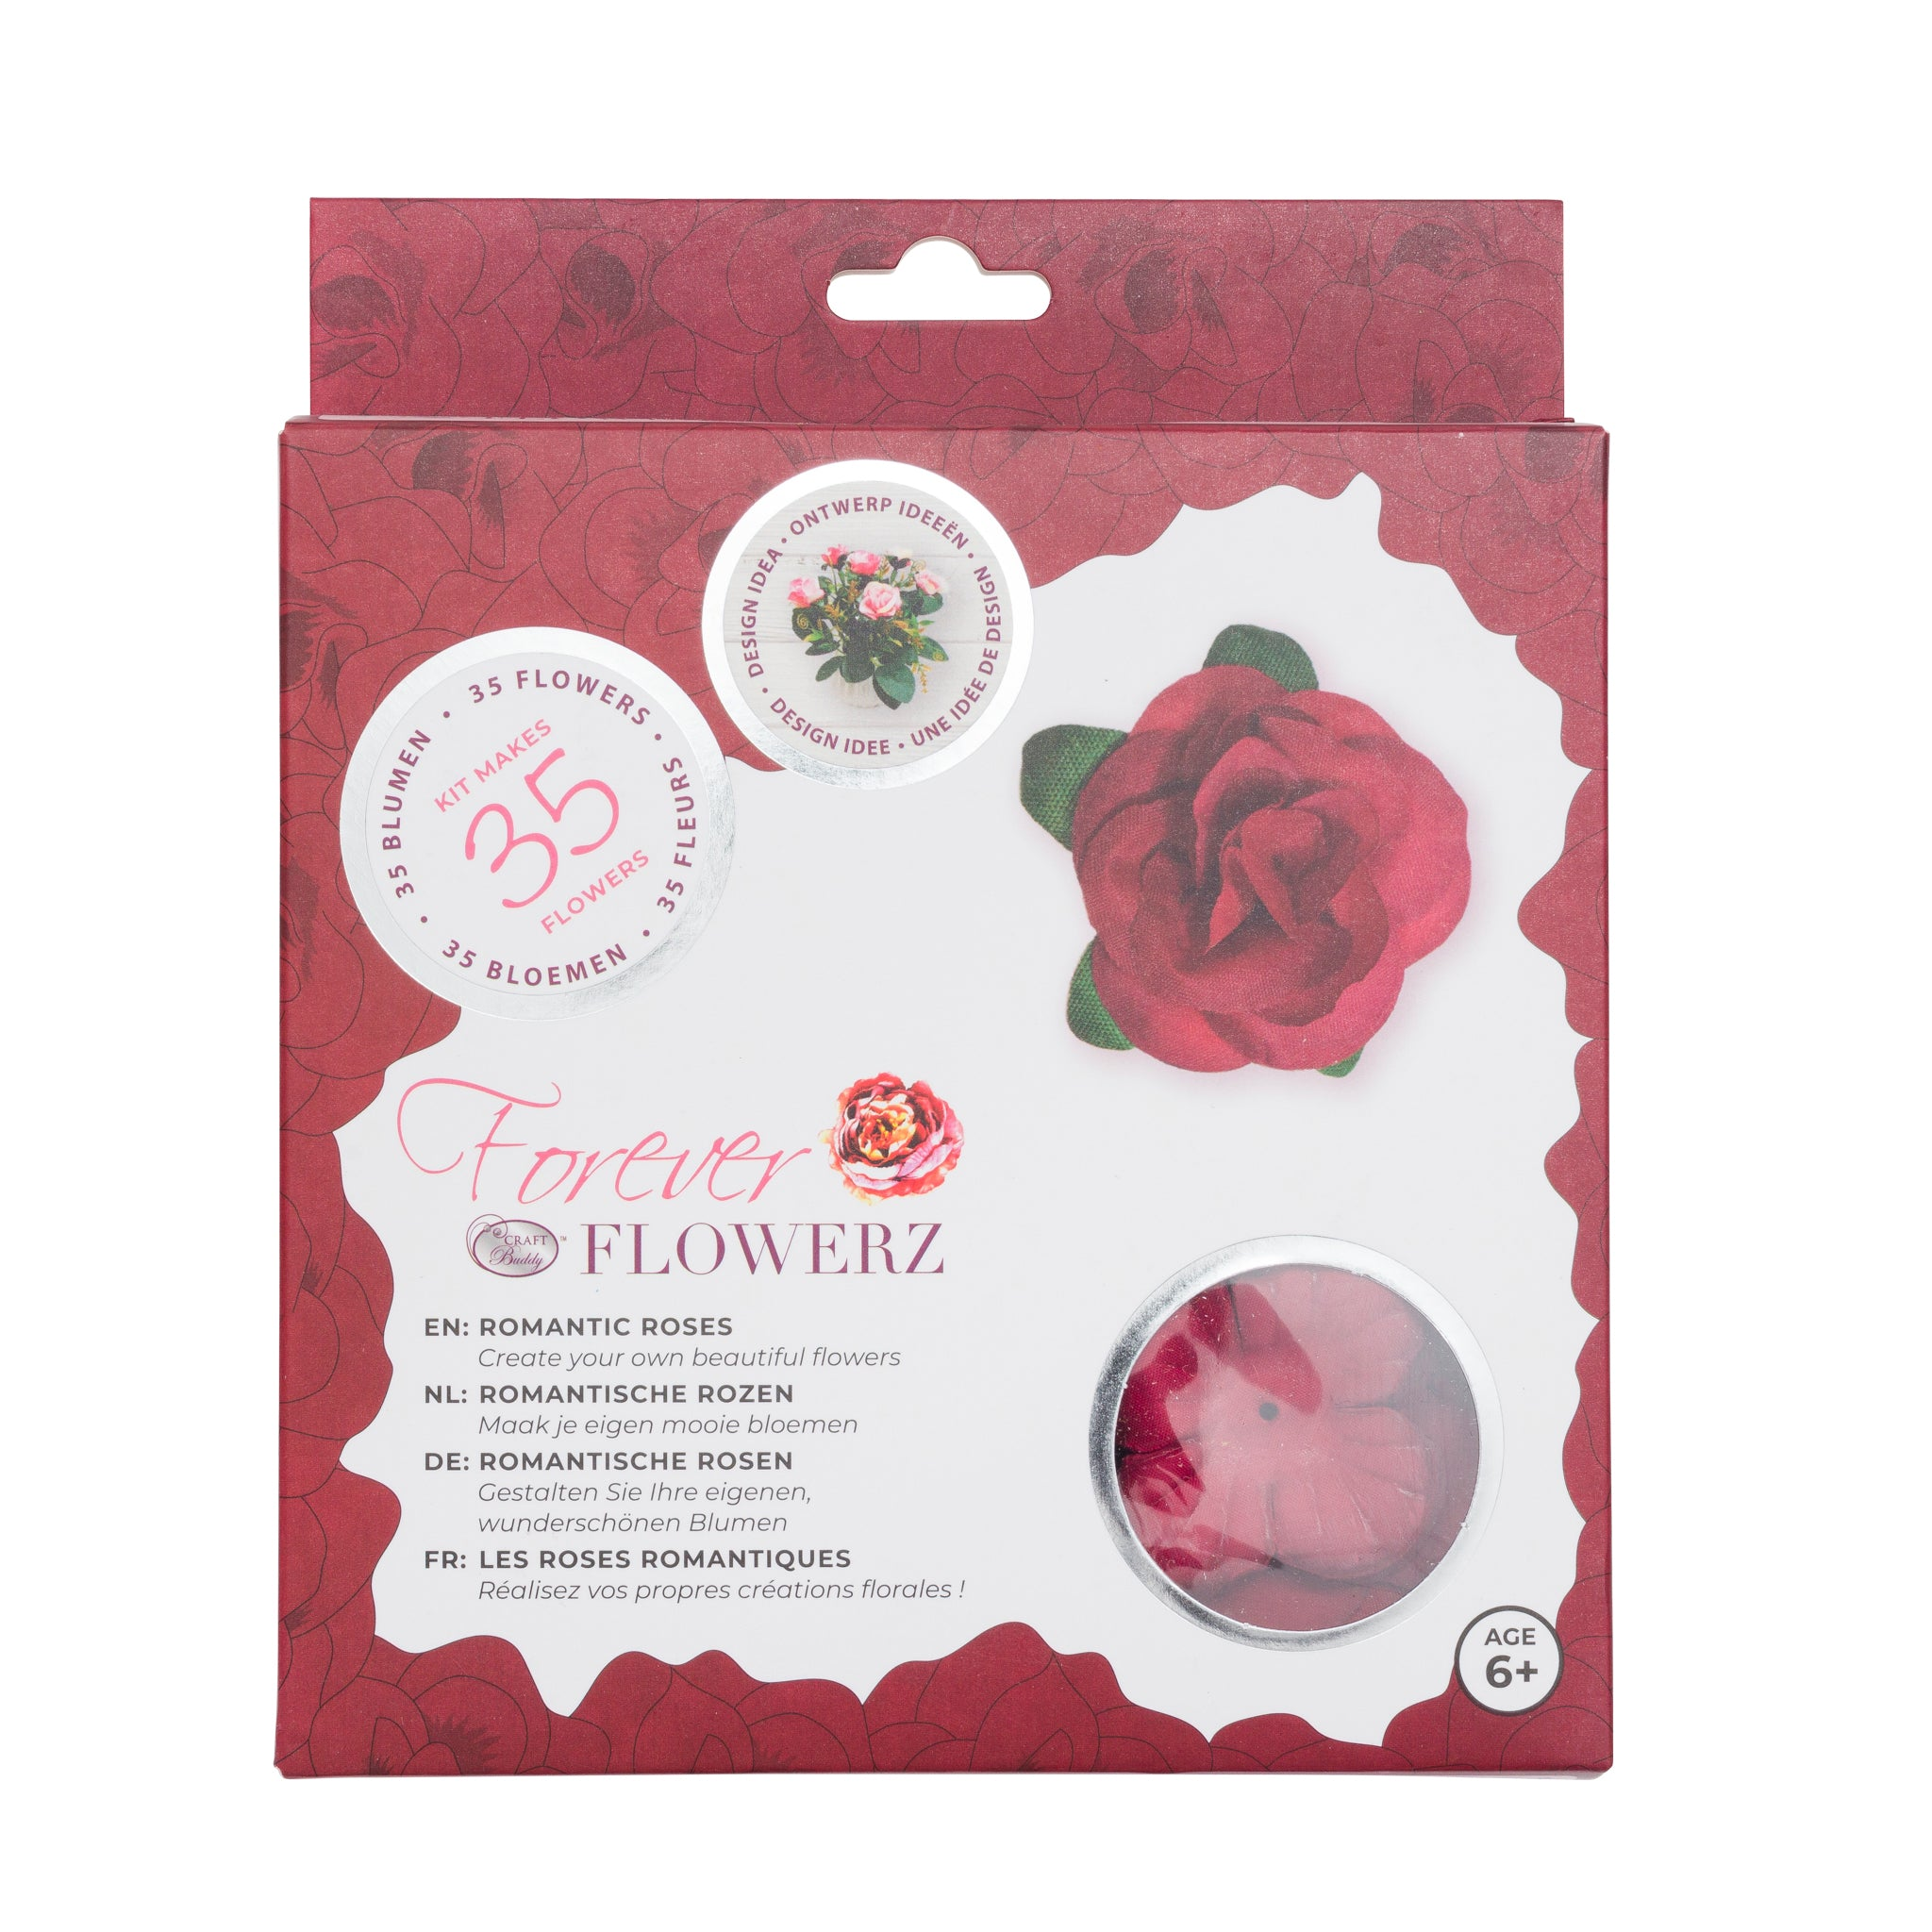 Flower Making Kit - Romantic Roses - BURGUNDY - FF05BG